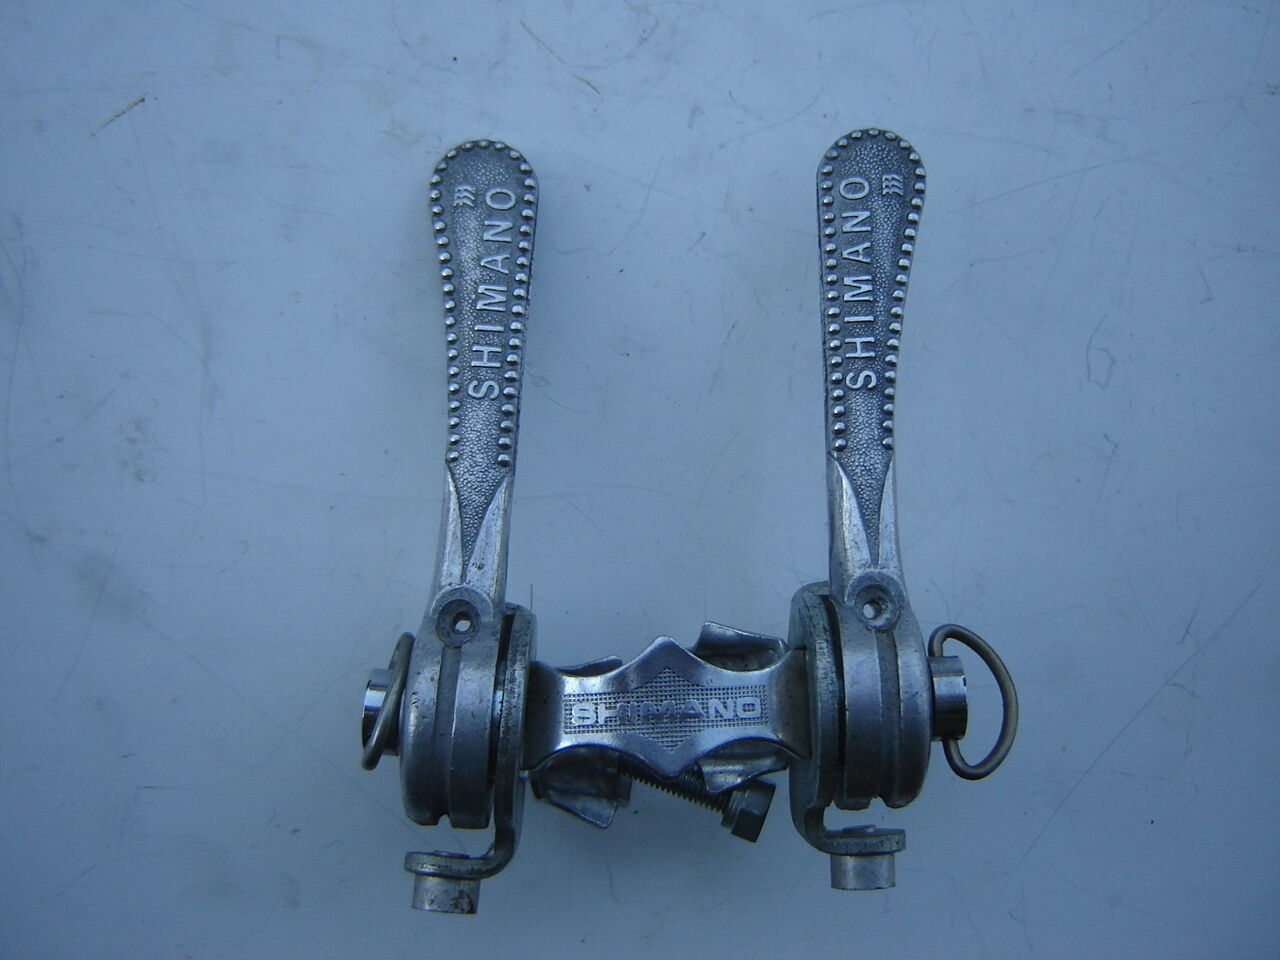 SHIMANO 333 CLAMP ON SHIFTING LEVERS - NOS